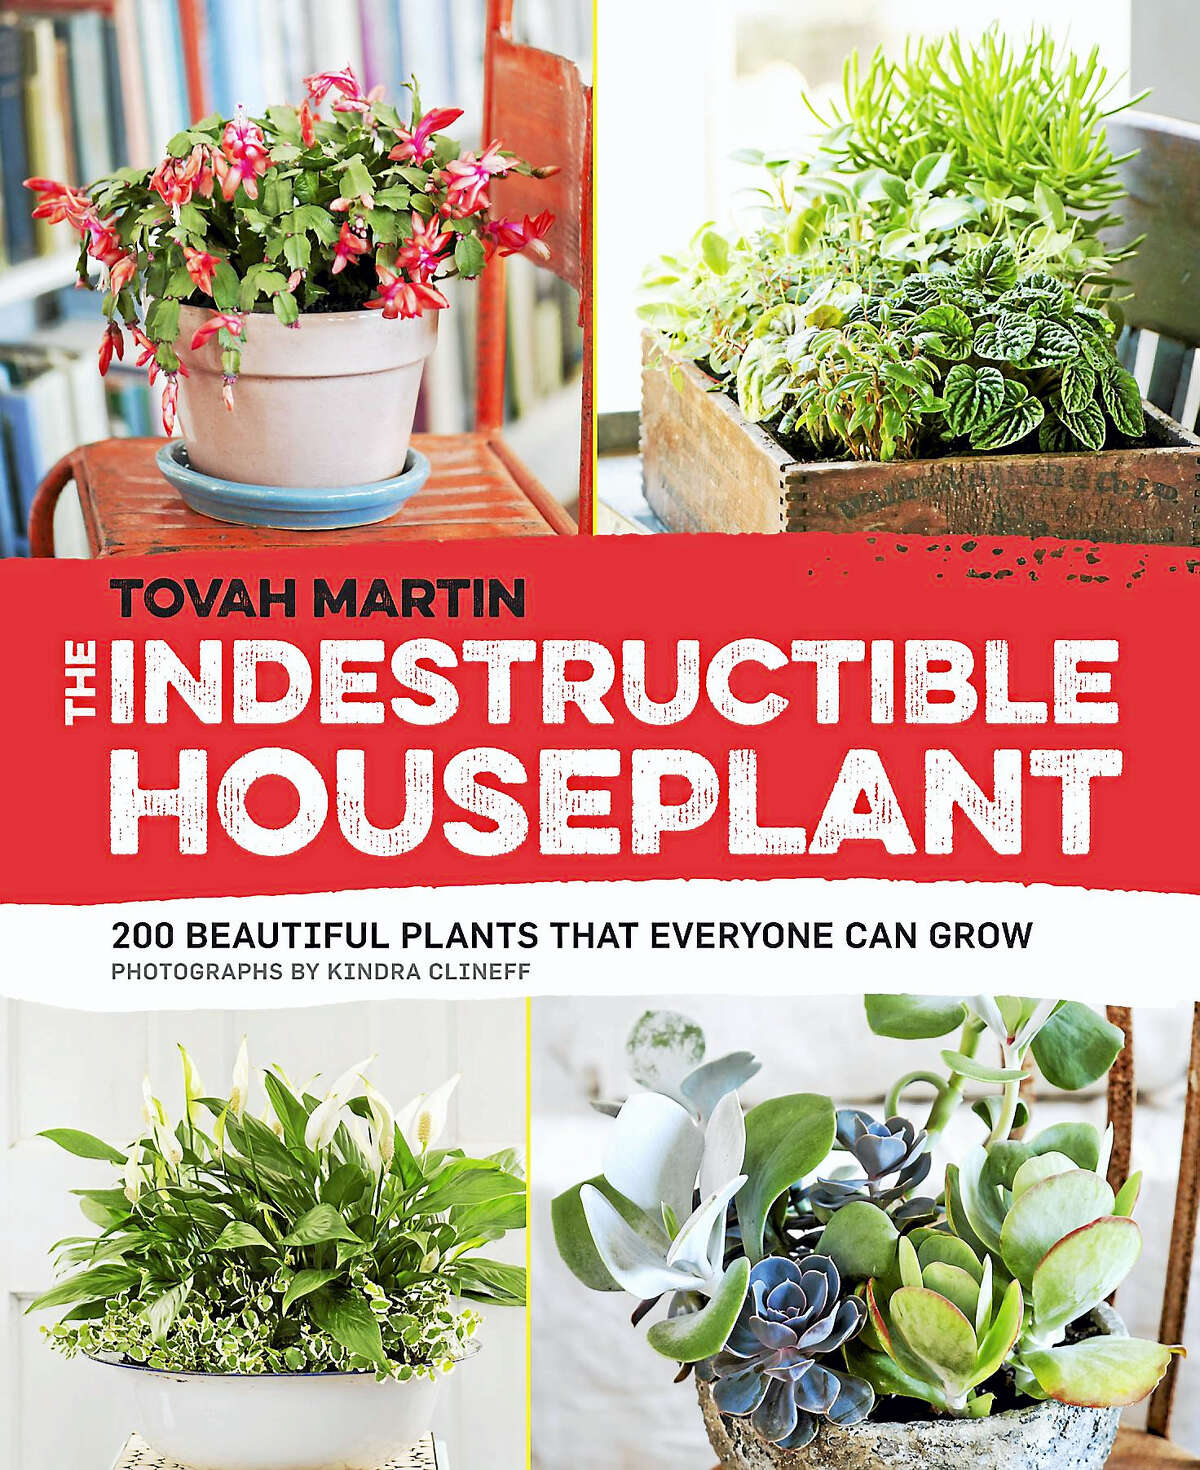 """The cover for """"The Indestructible Houseplant"""" by Tovah Martin."""